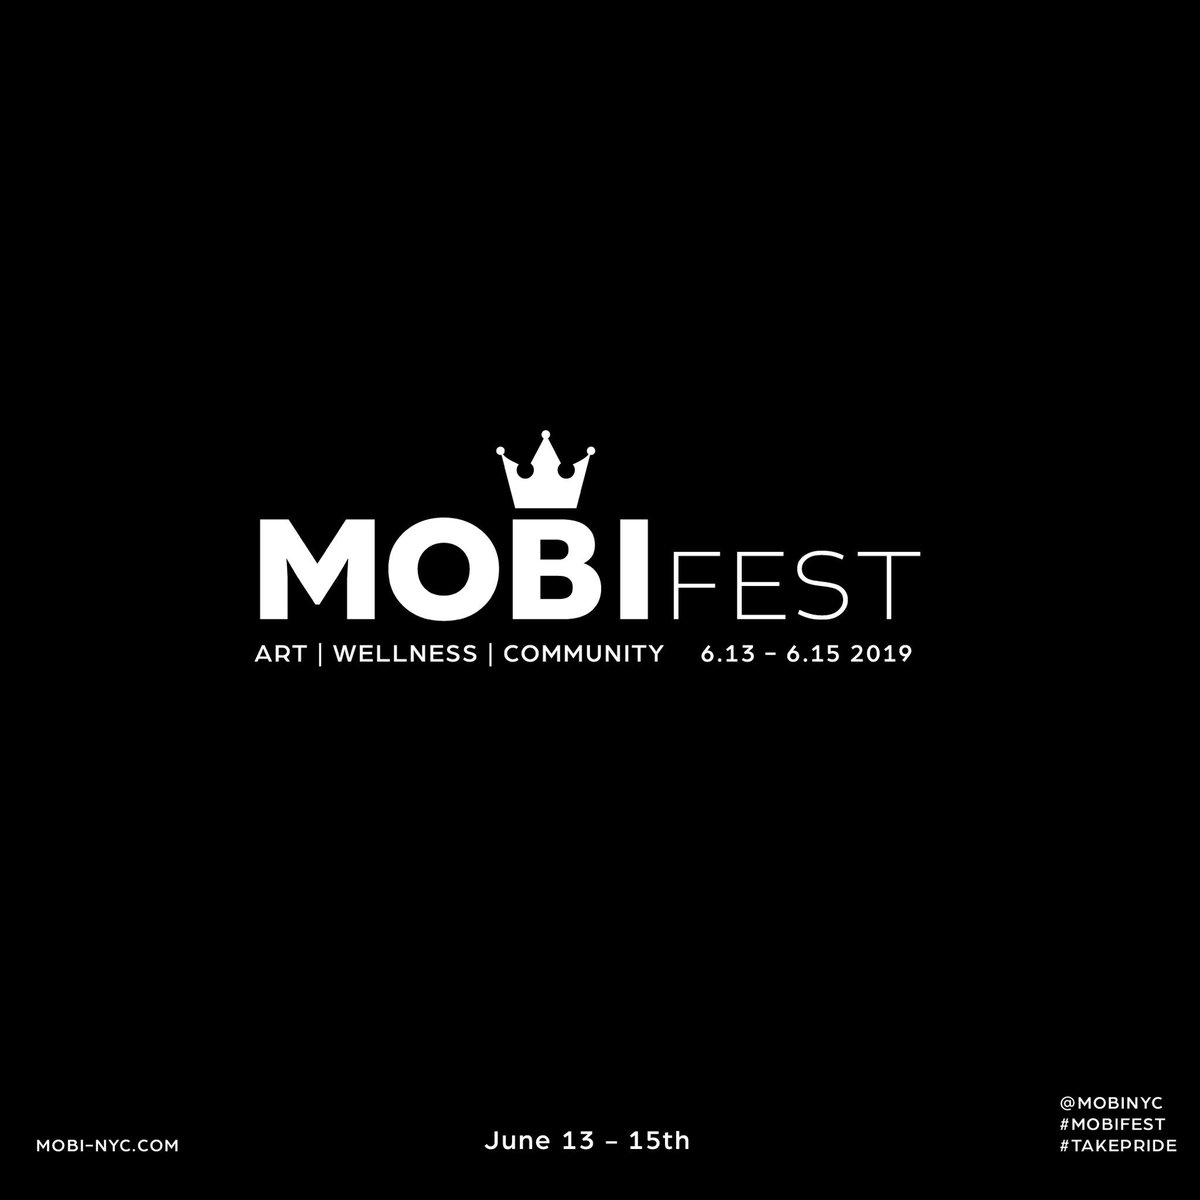 We're less than a month away from #MOBIfest follow mobi-nyc.com to register NOW! #WeAreMOBI 🏆🙌🏽